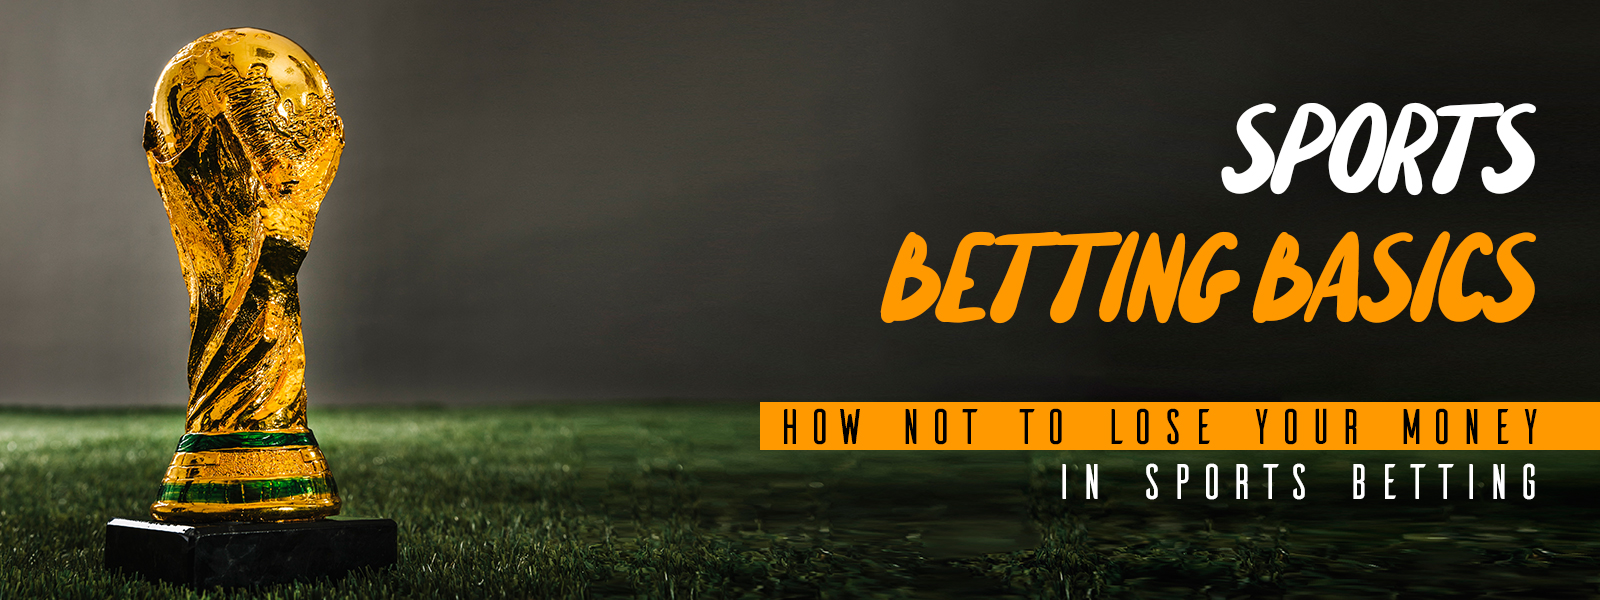 Sports Betting Basics - How Not to Lose Your Money in Sports Betting